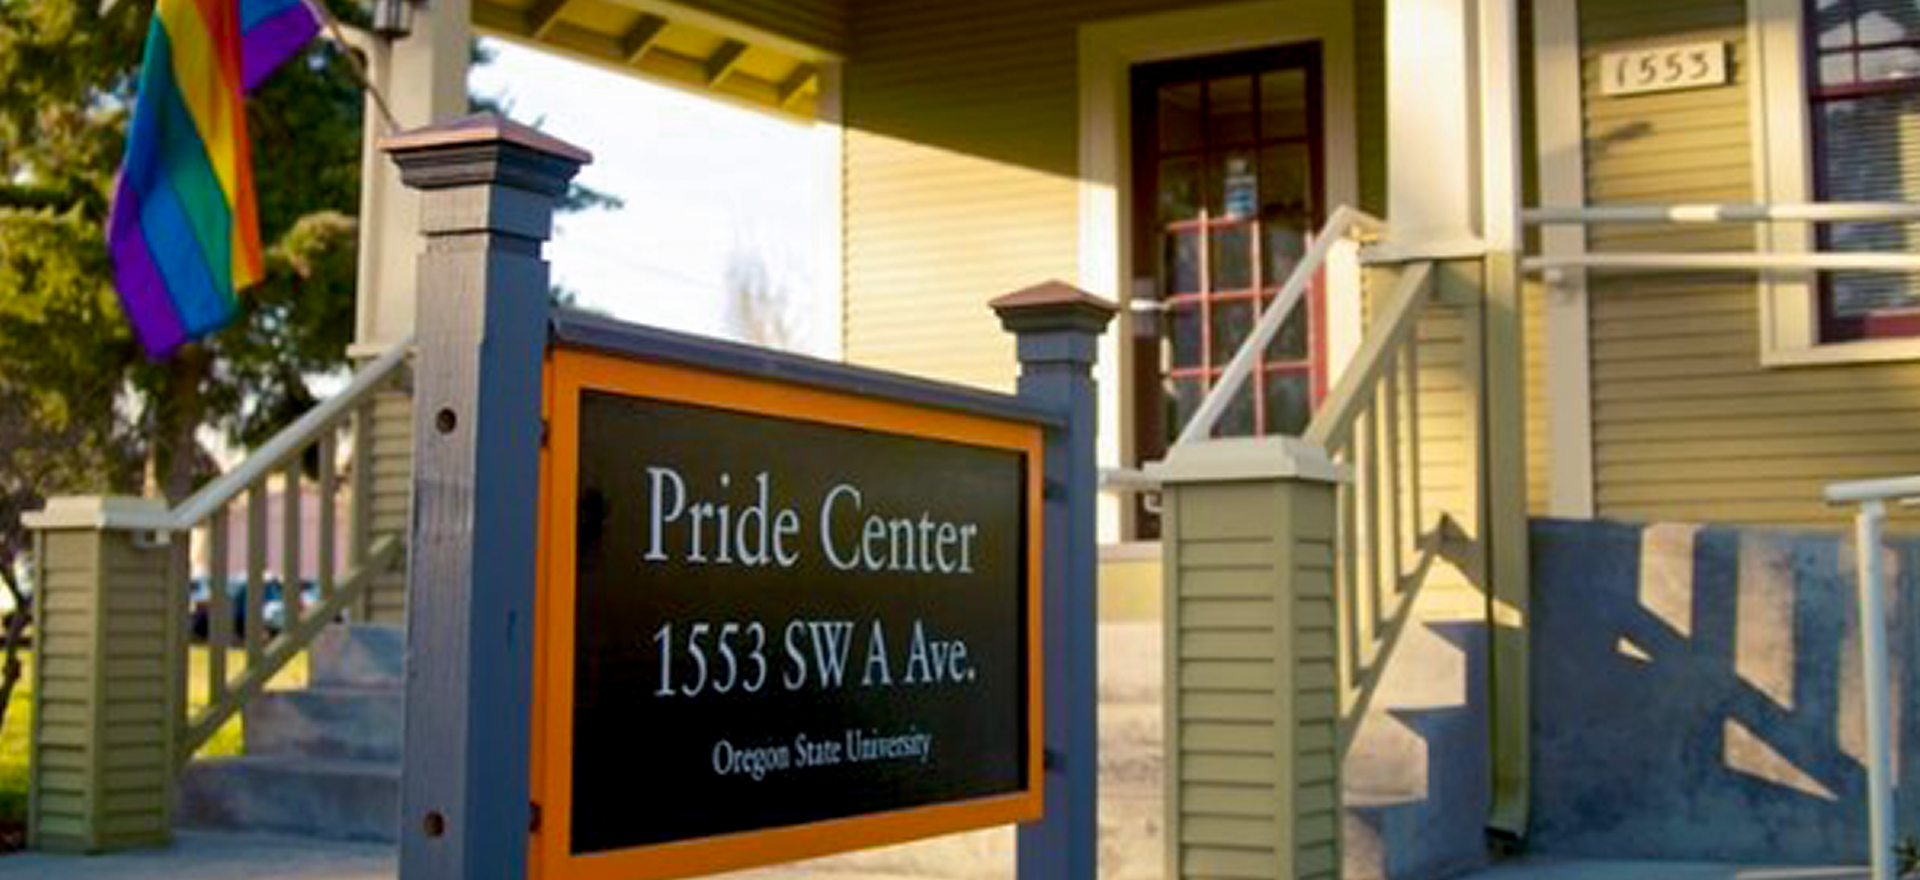 A sign with Pride Center and 1553 SW A. Ave in front of a home with a pride flag.